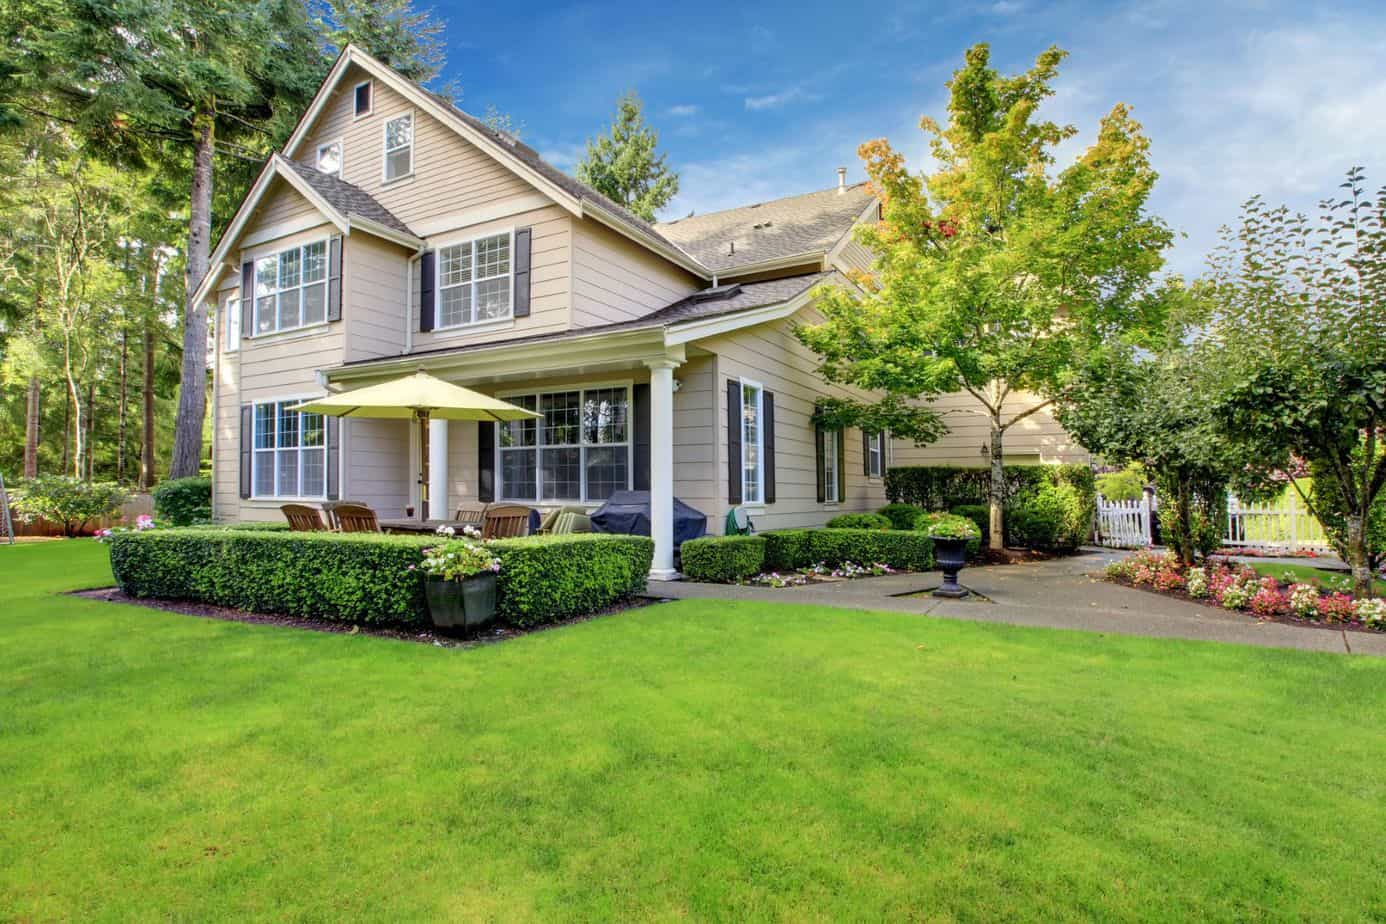 How to Enhance Home Security to Boost Property Value